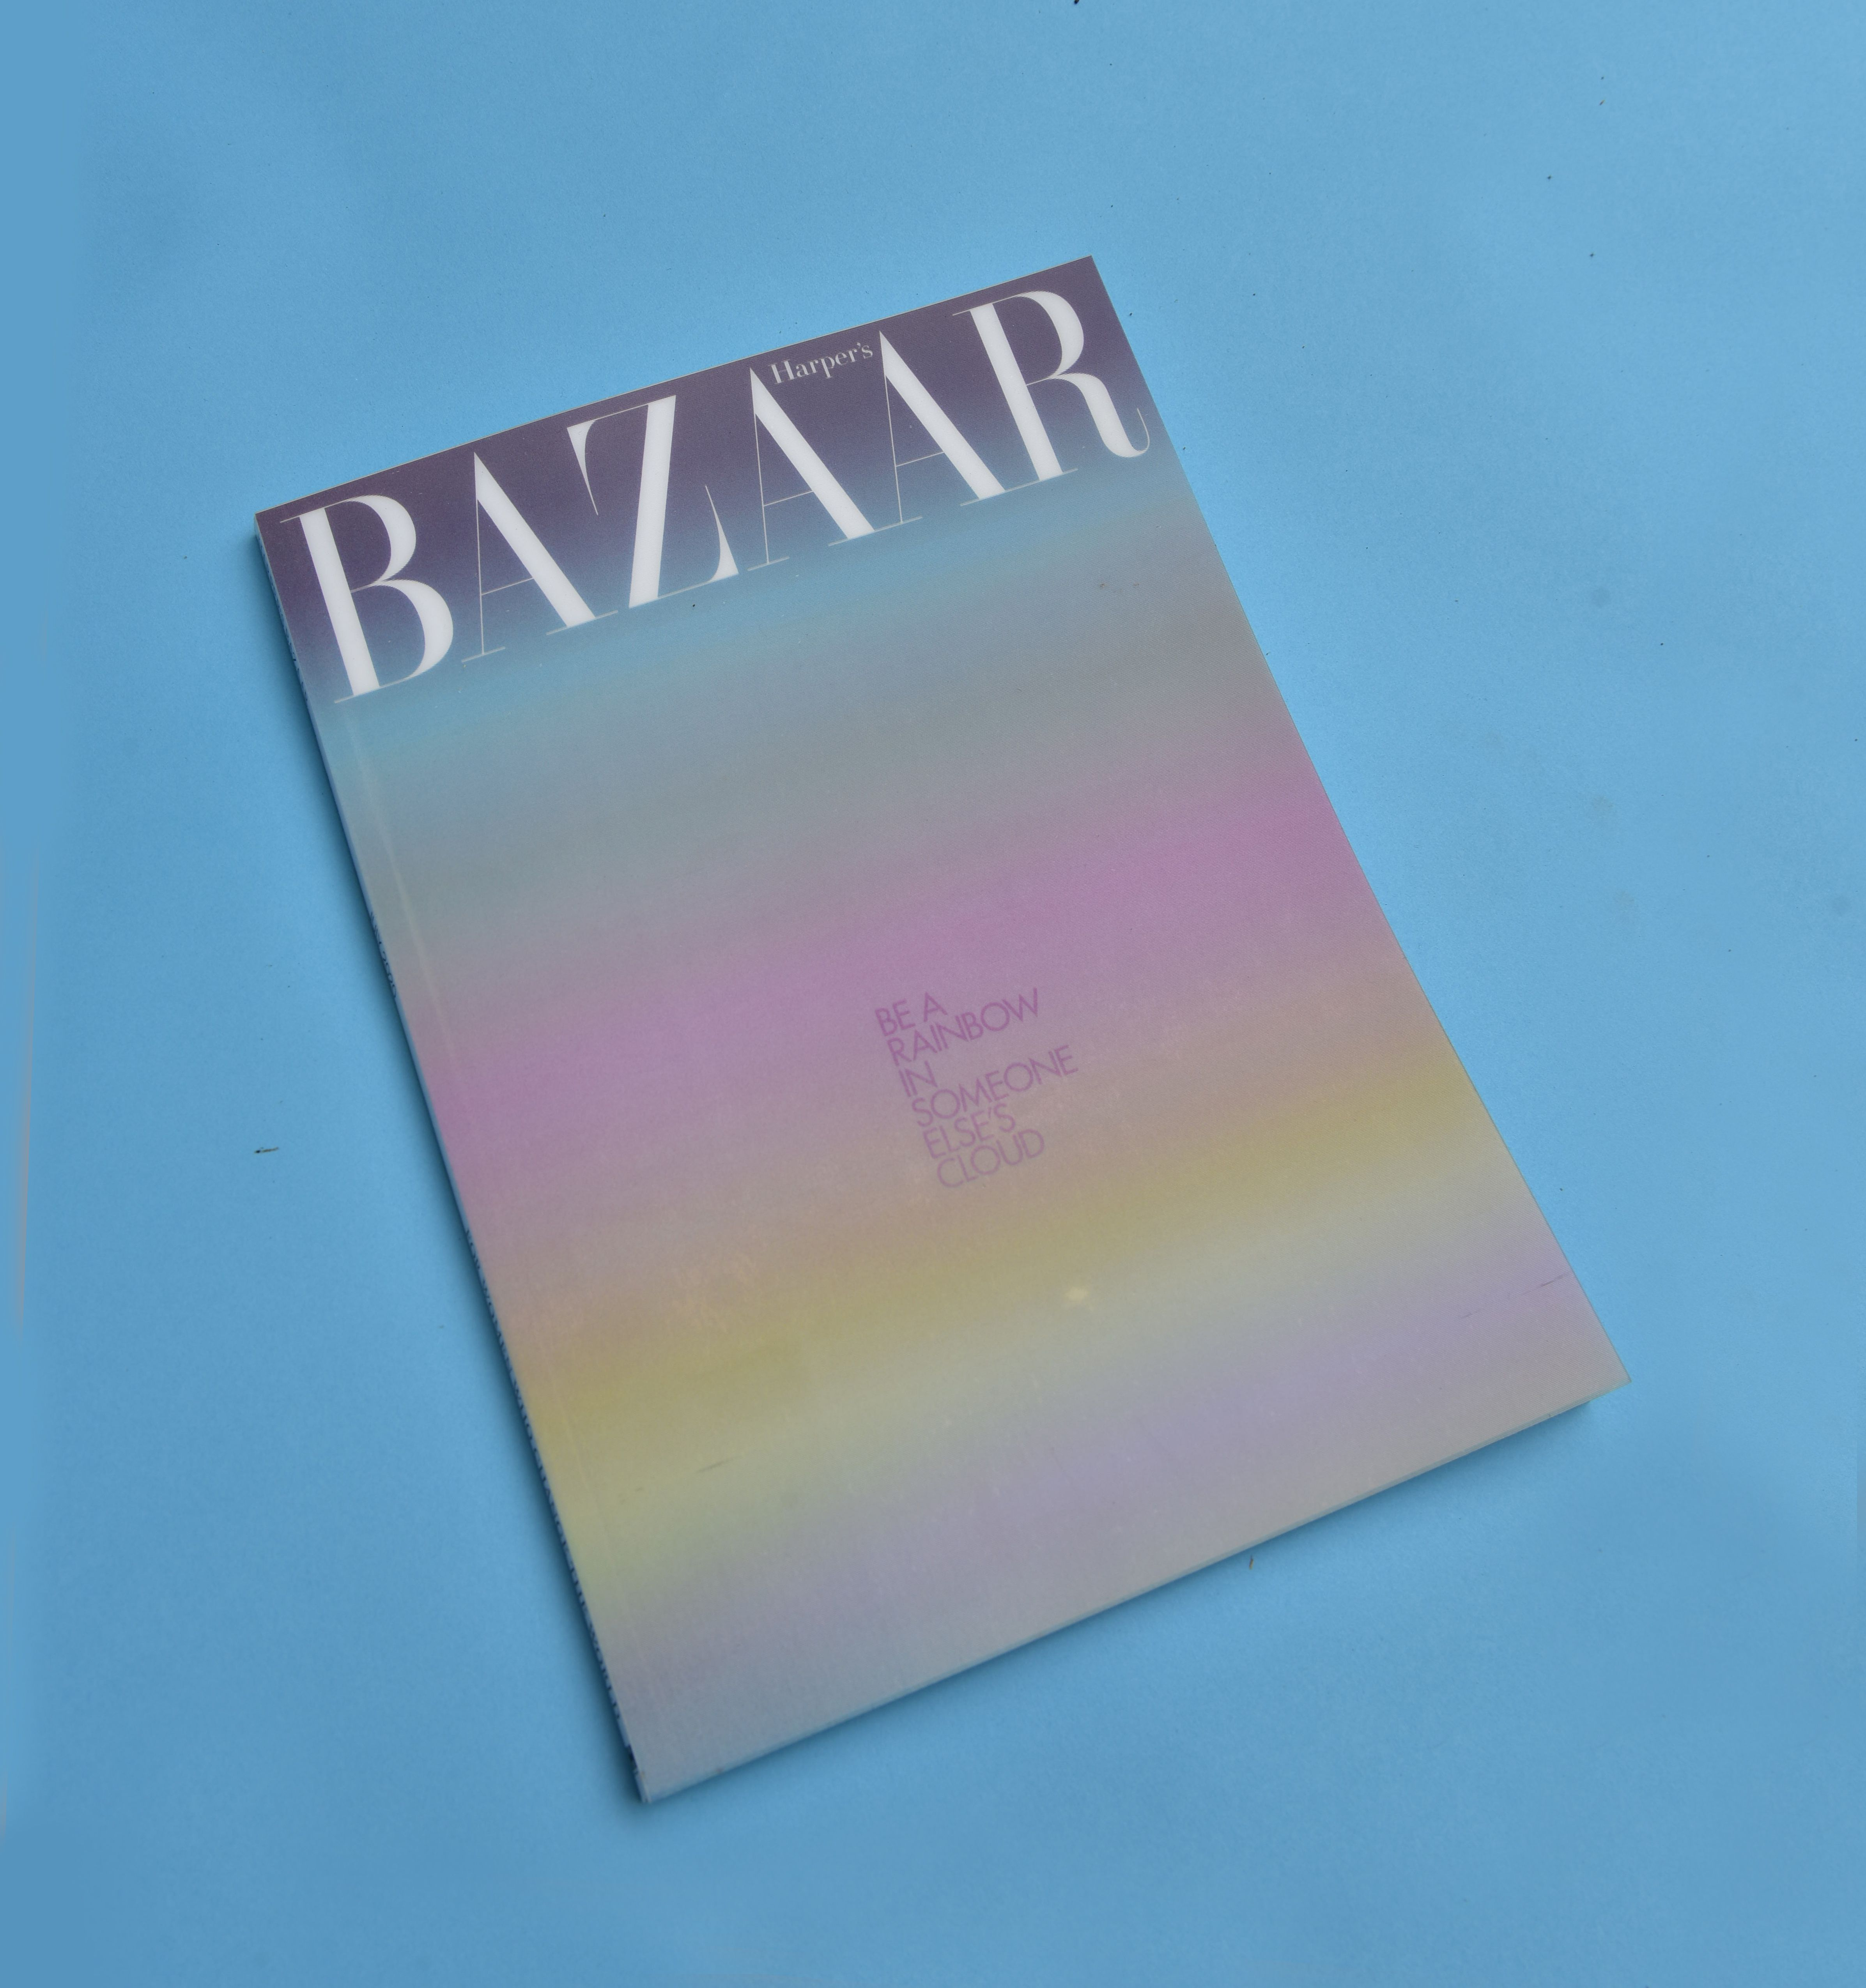 Our limited-edition rainbow holographic cover celebrates the NHS